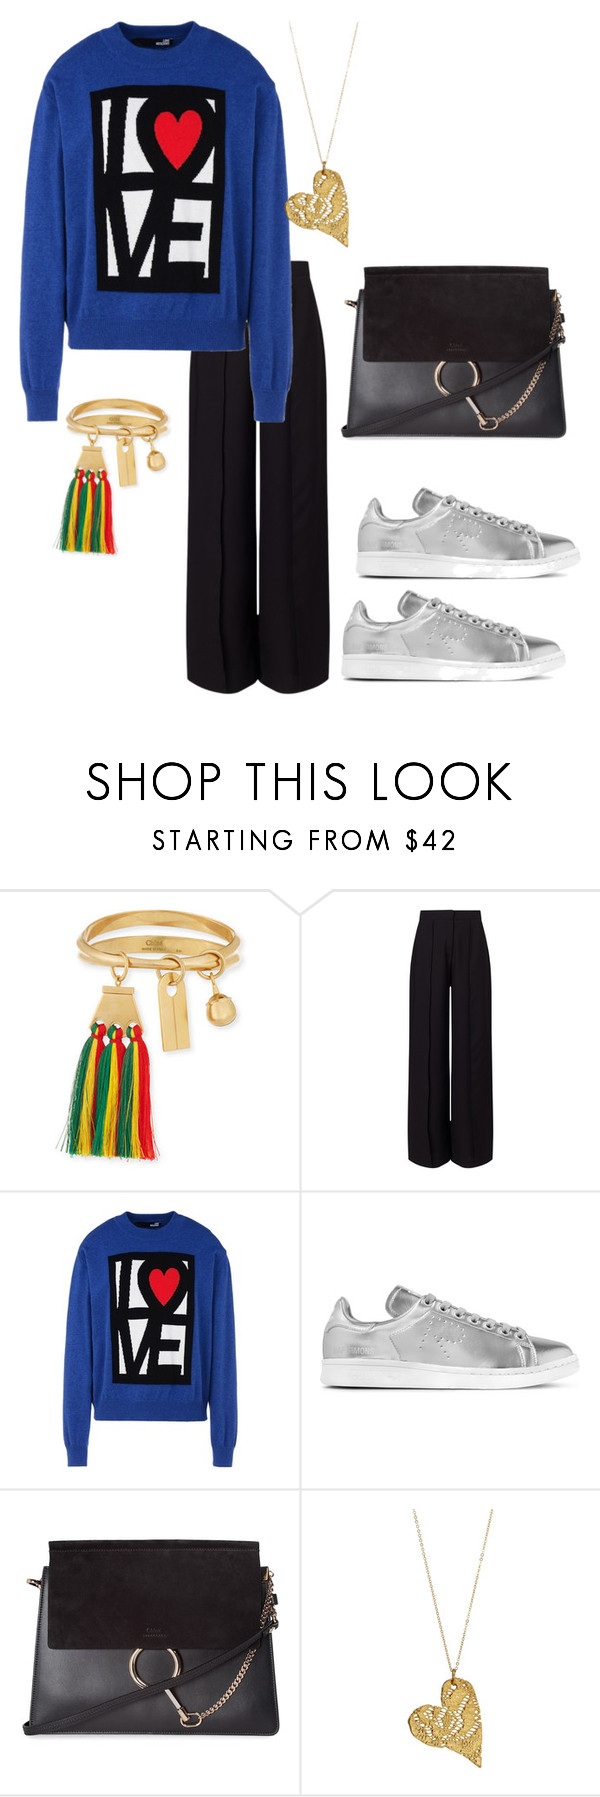 """""""Untitled #3374"""" by emma-oloughlin ❤ liked on Polyvore featuring Chloé, Miss Selfridge, Love Moschino, adidas Originals, ootd, fabulous, CasualChic and SundayStyle"""